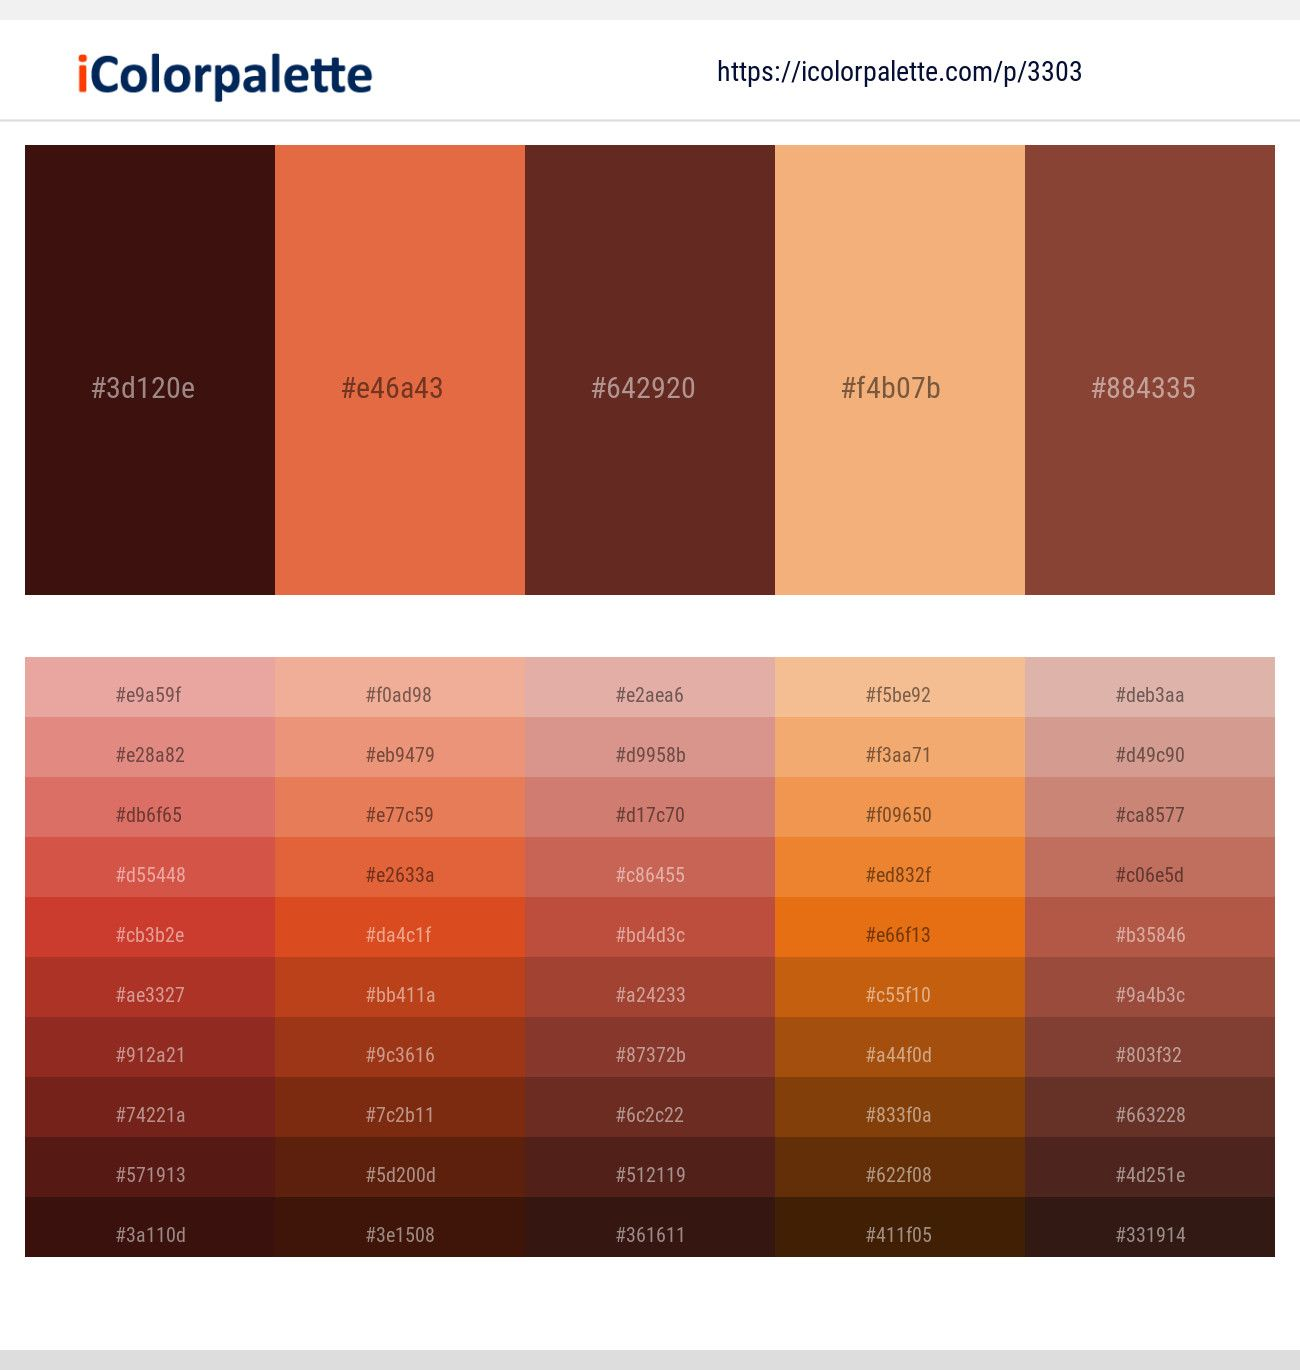 Paco Burnt Sienna Metallic Copper Rajah Sanguine Brown Color Scheme Icolorpalette Brown Color Palette Brown Color Schemes Black Color Palette Sienna is a color name (as opposed to a hexadecimal value or rgb decimal value). paco burnt sienna metallic copper